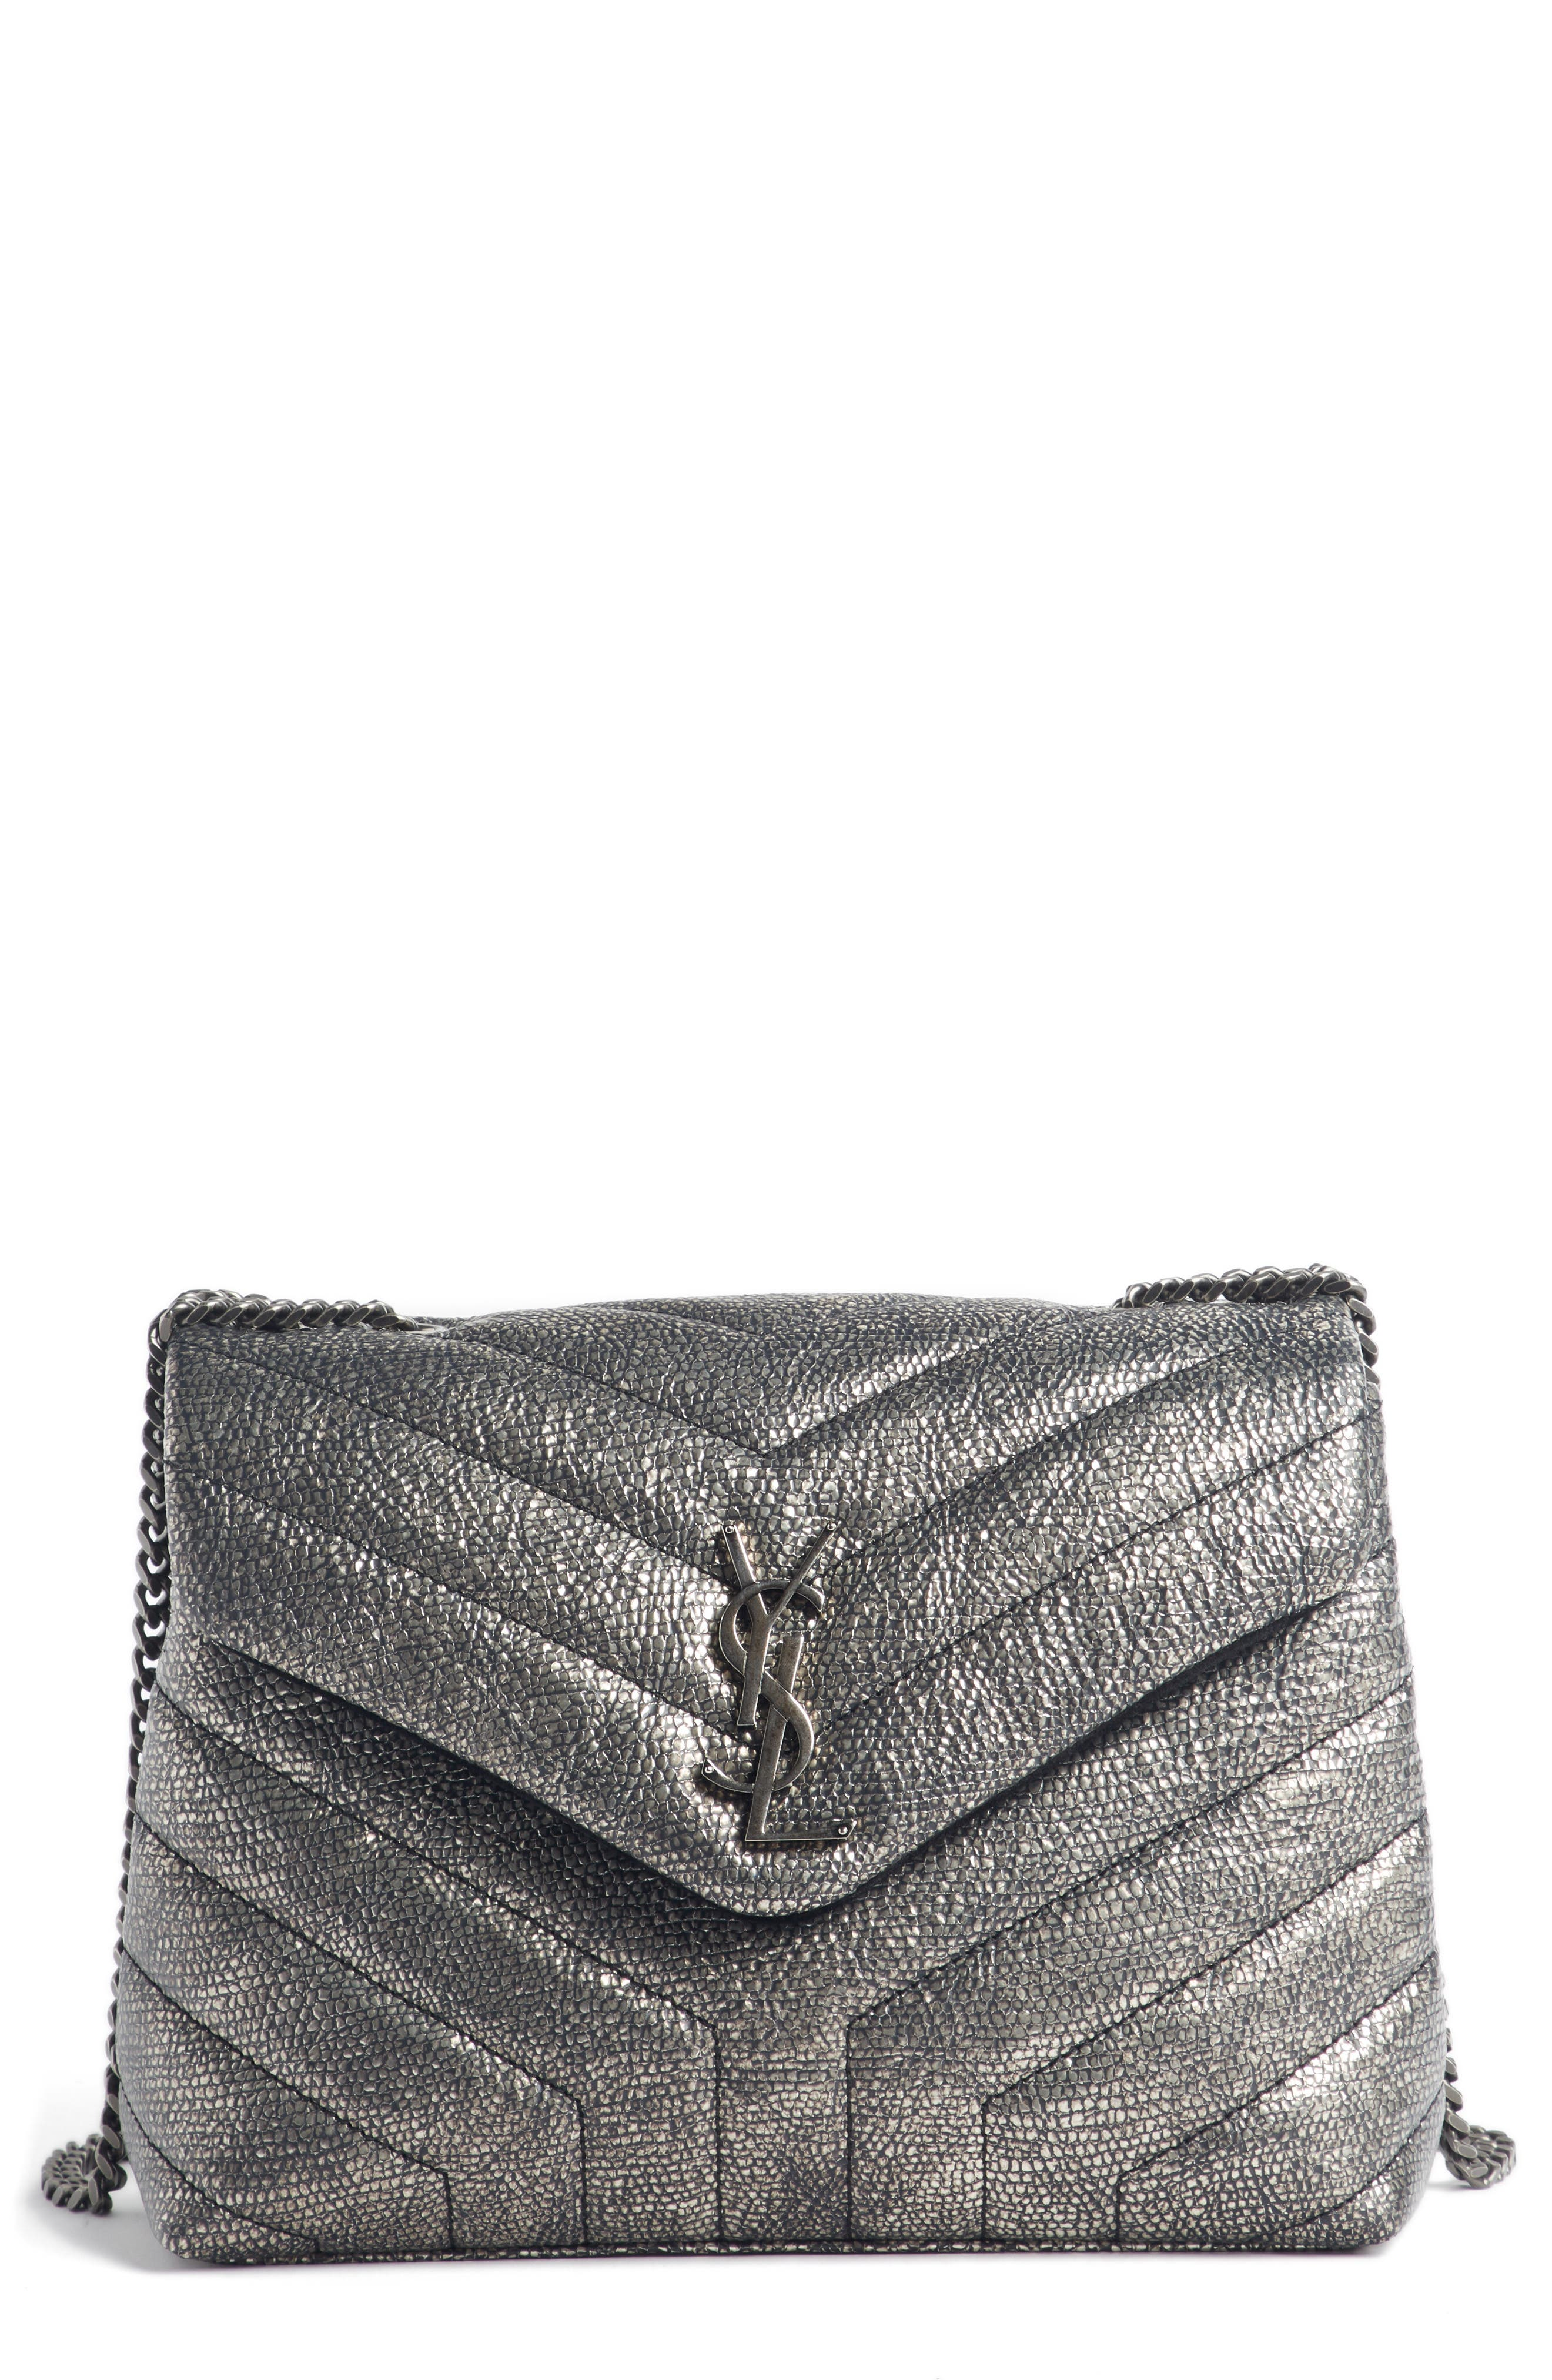 Loulou Small Metallic Leather Shoulder Bag,                             Main thumbnail 1, color,                             Graphtie